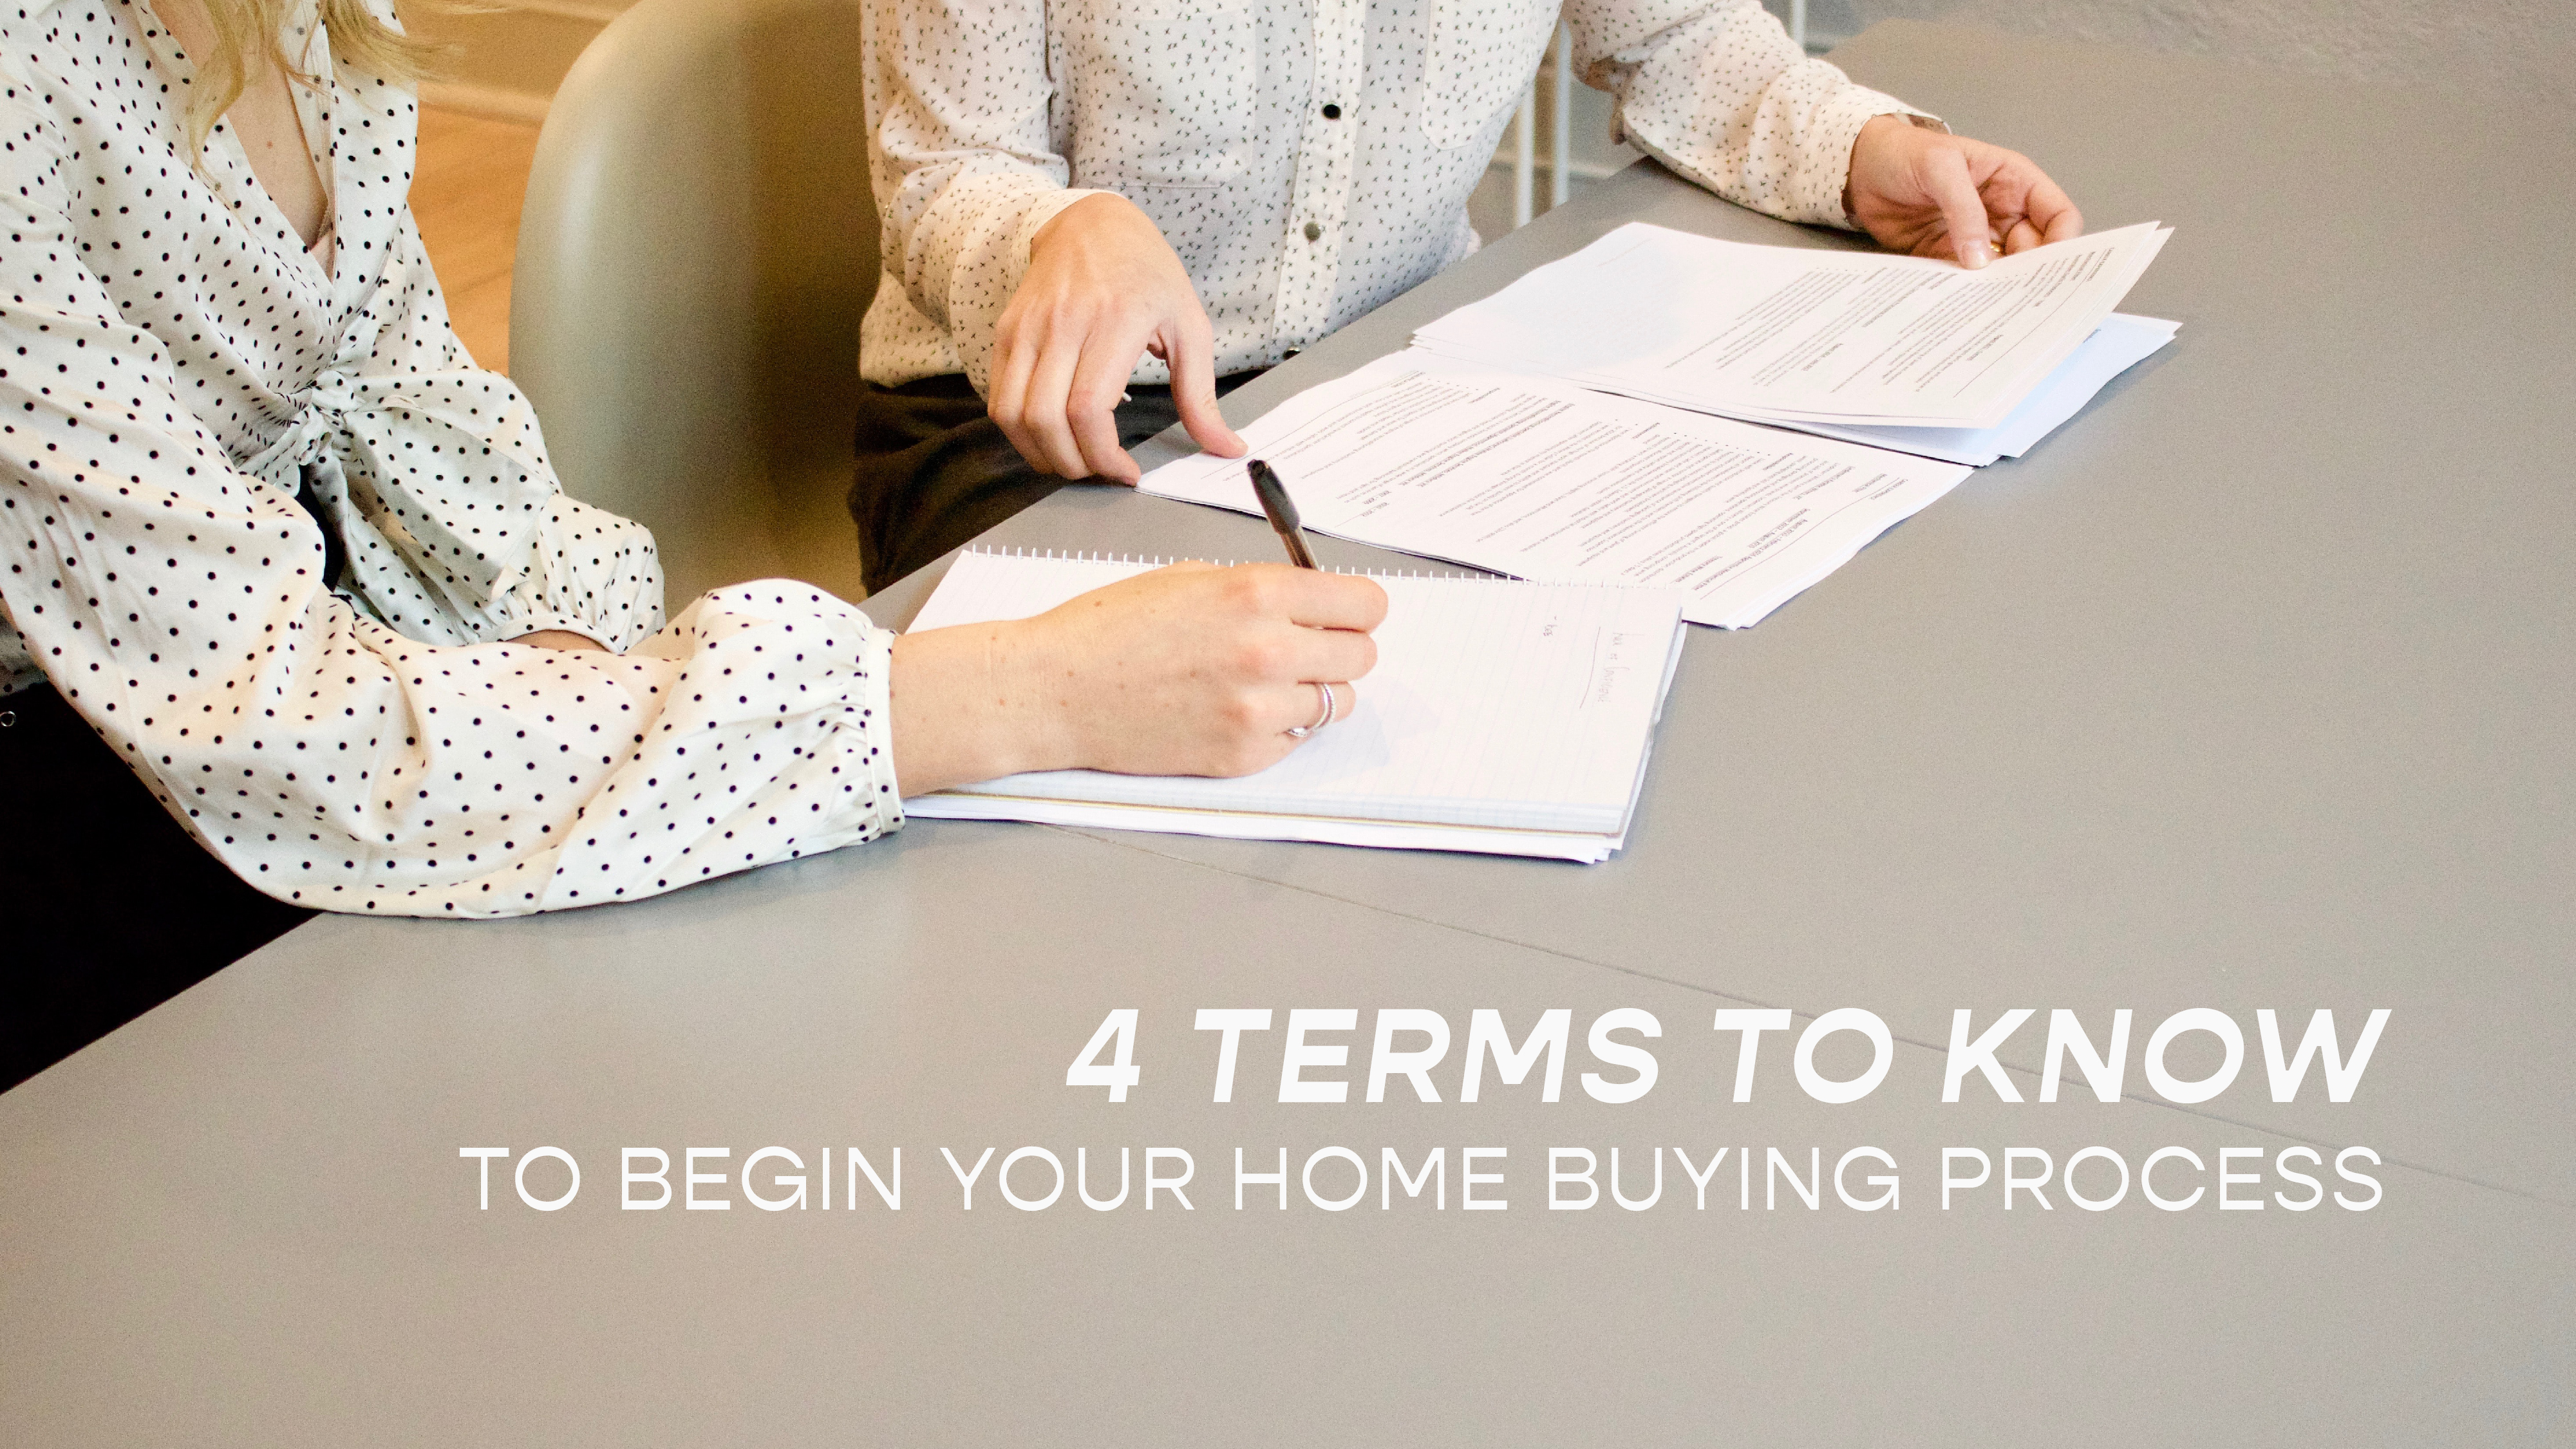 4 Terms to Know to Begin Your Home Buying Process